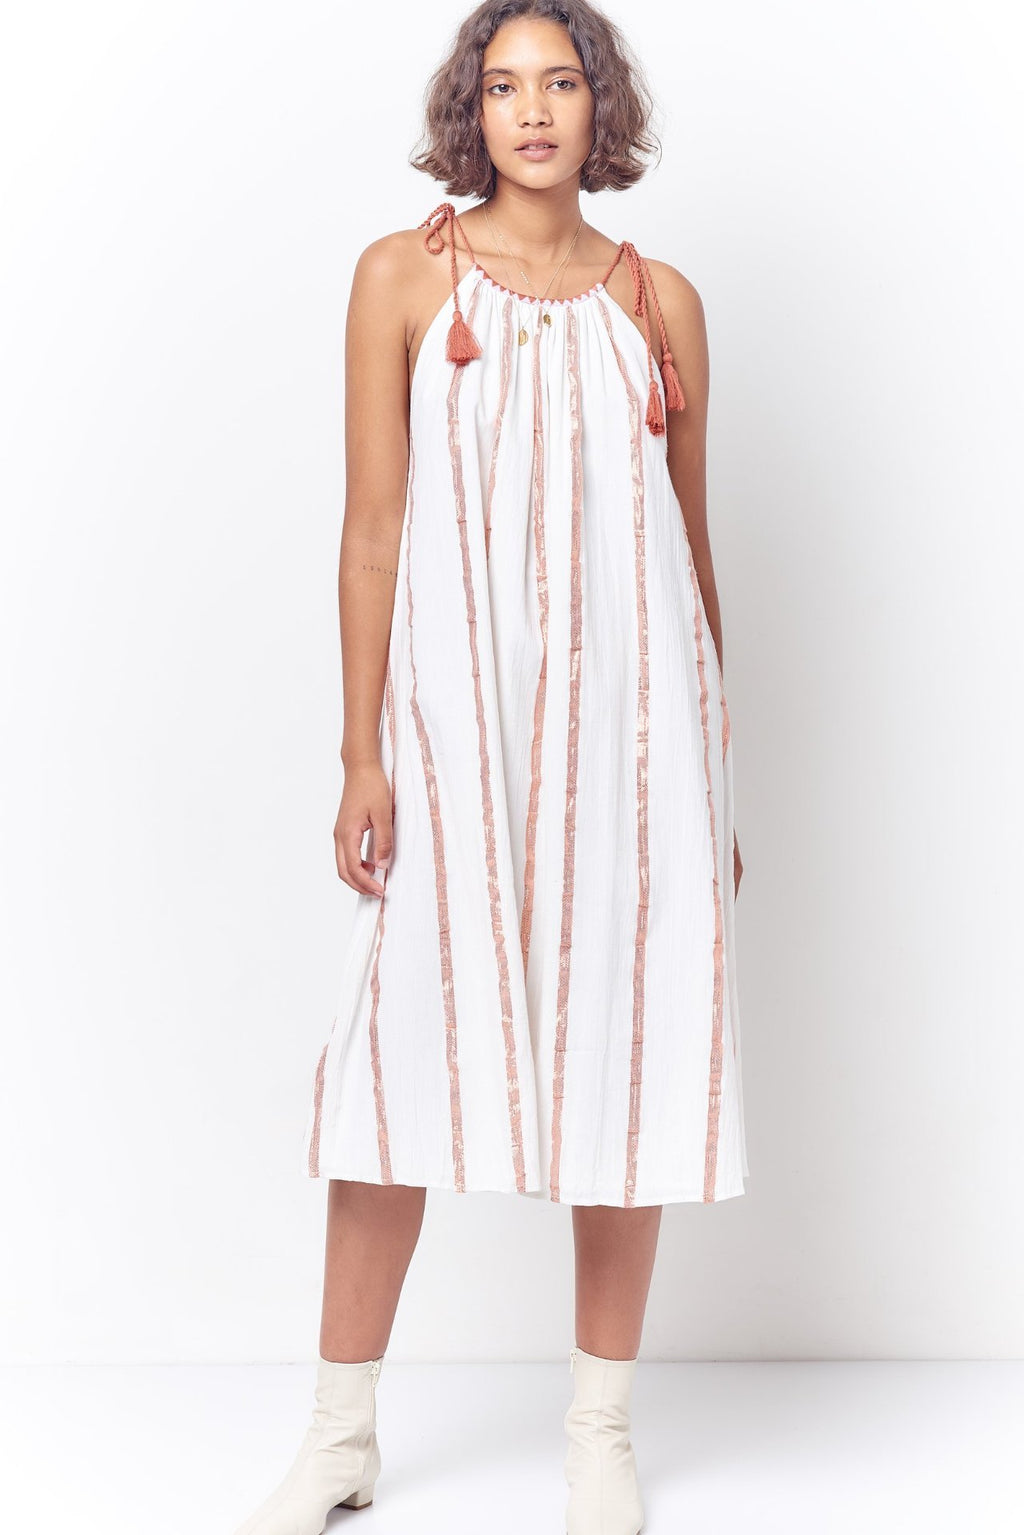 CINDY Peasant Style Sun Dress - Stripe